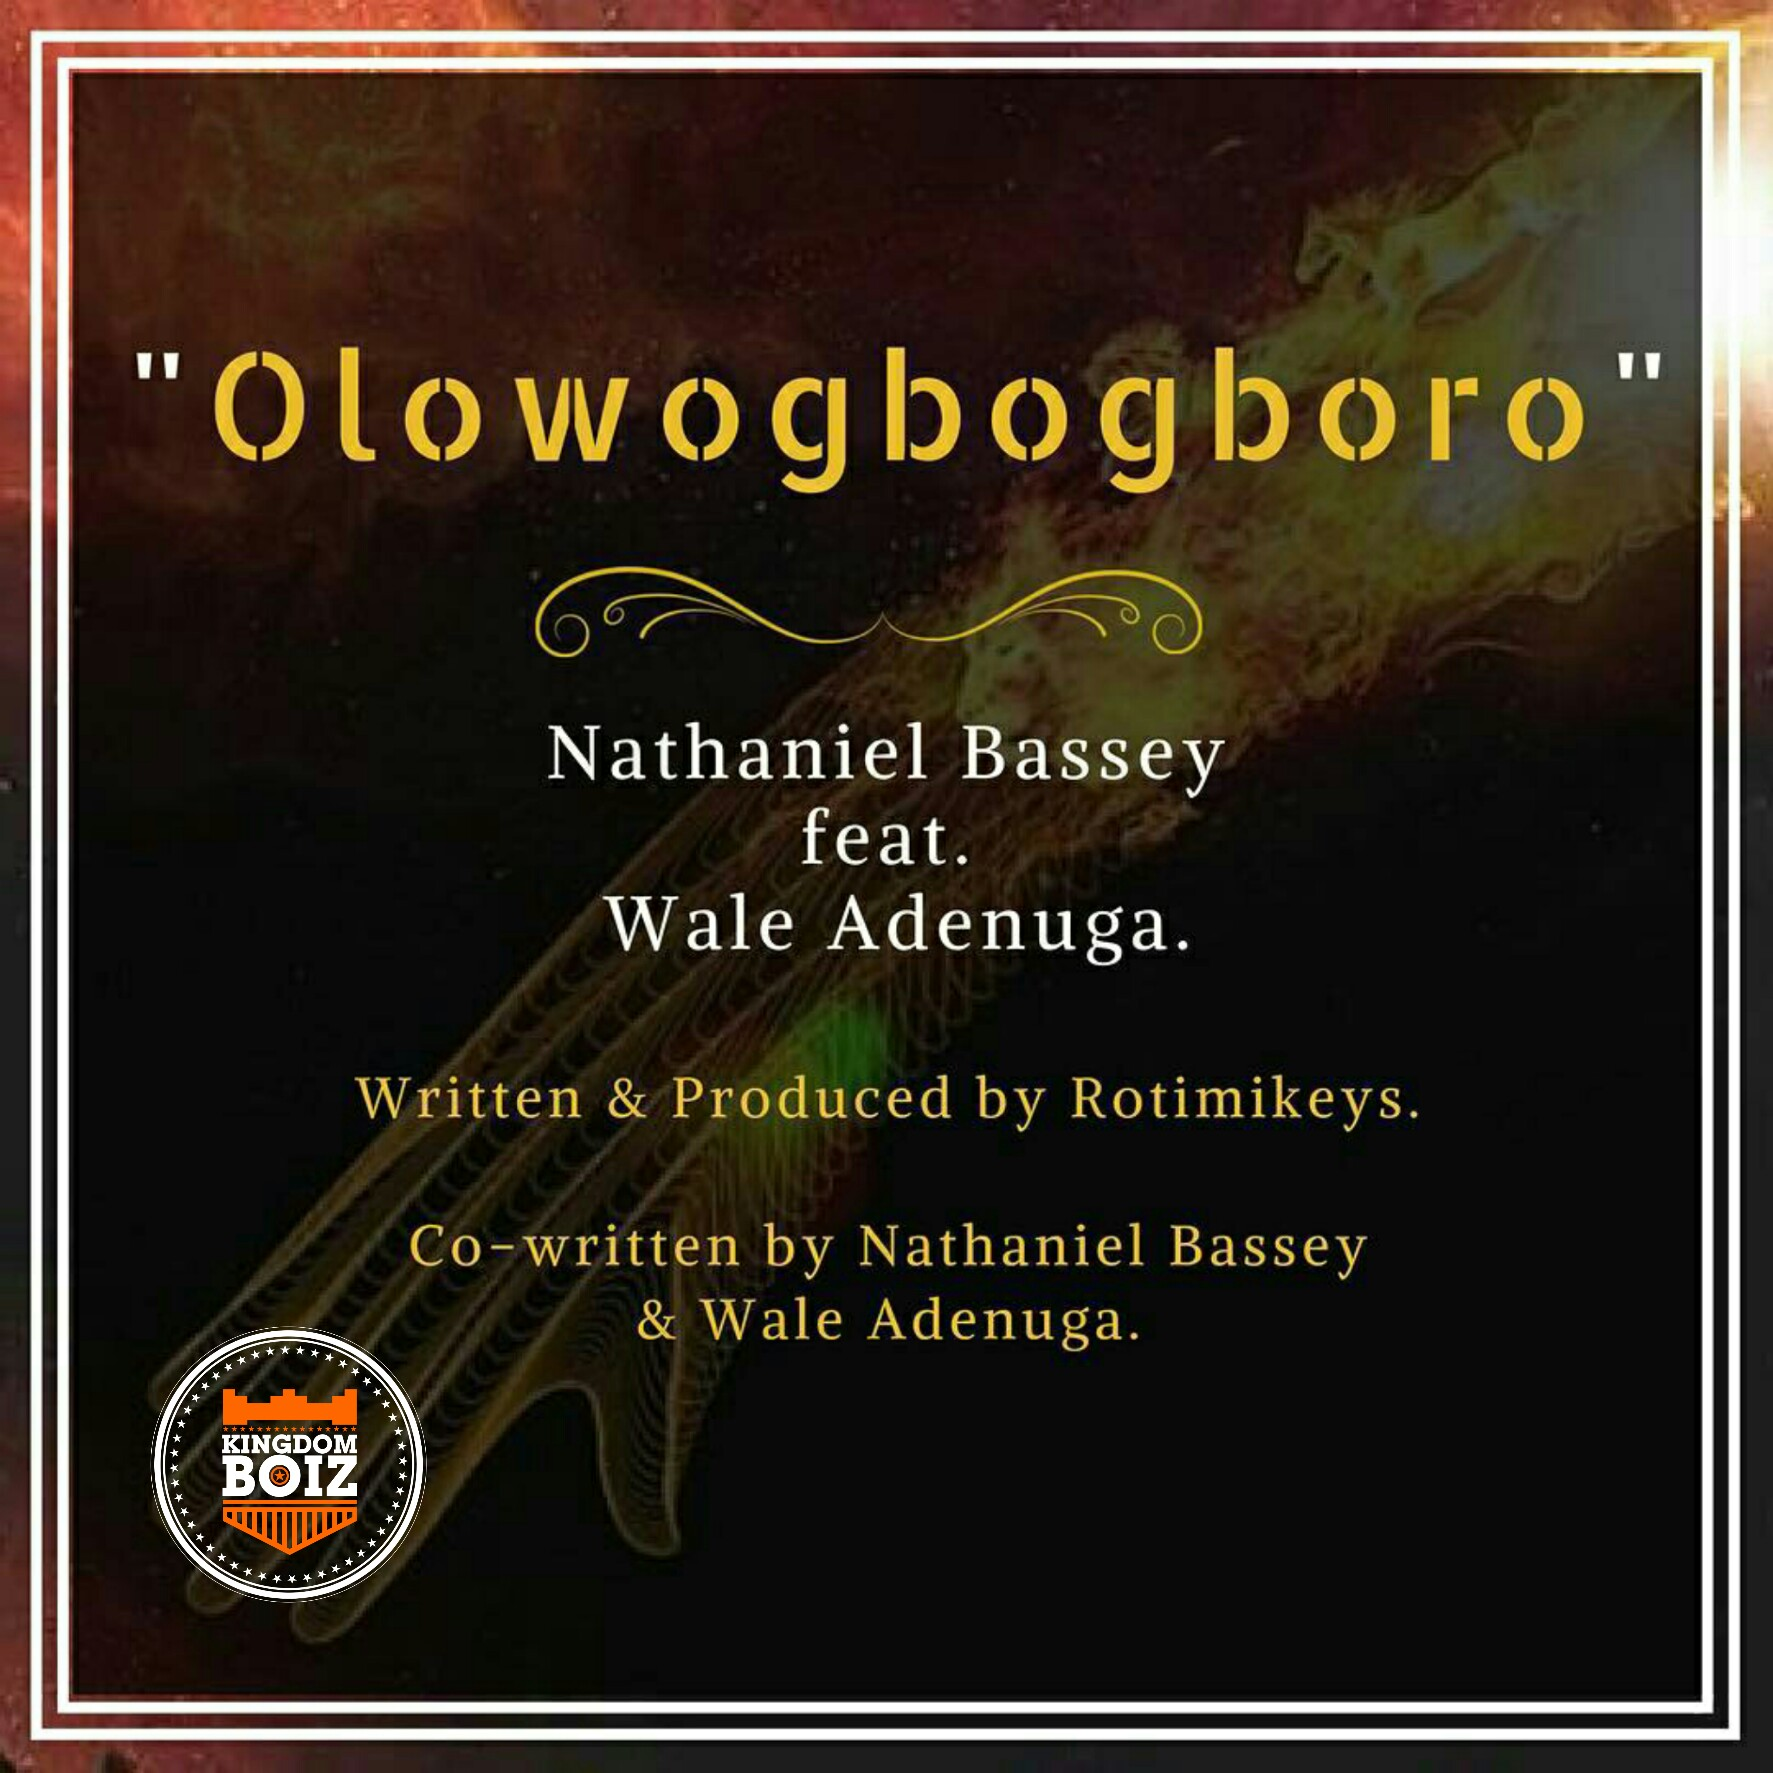 DOWNLOAD Music: Nathaniel Bassey - Olowogbogboro (ft. Wale Adenuga) | Kingdomboiz